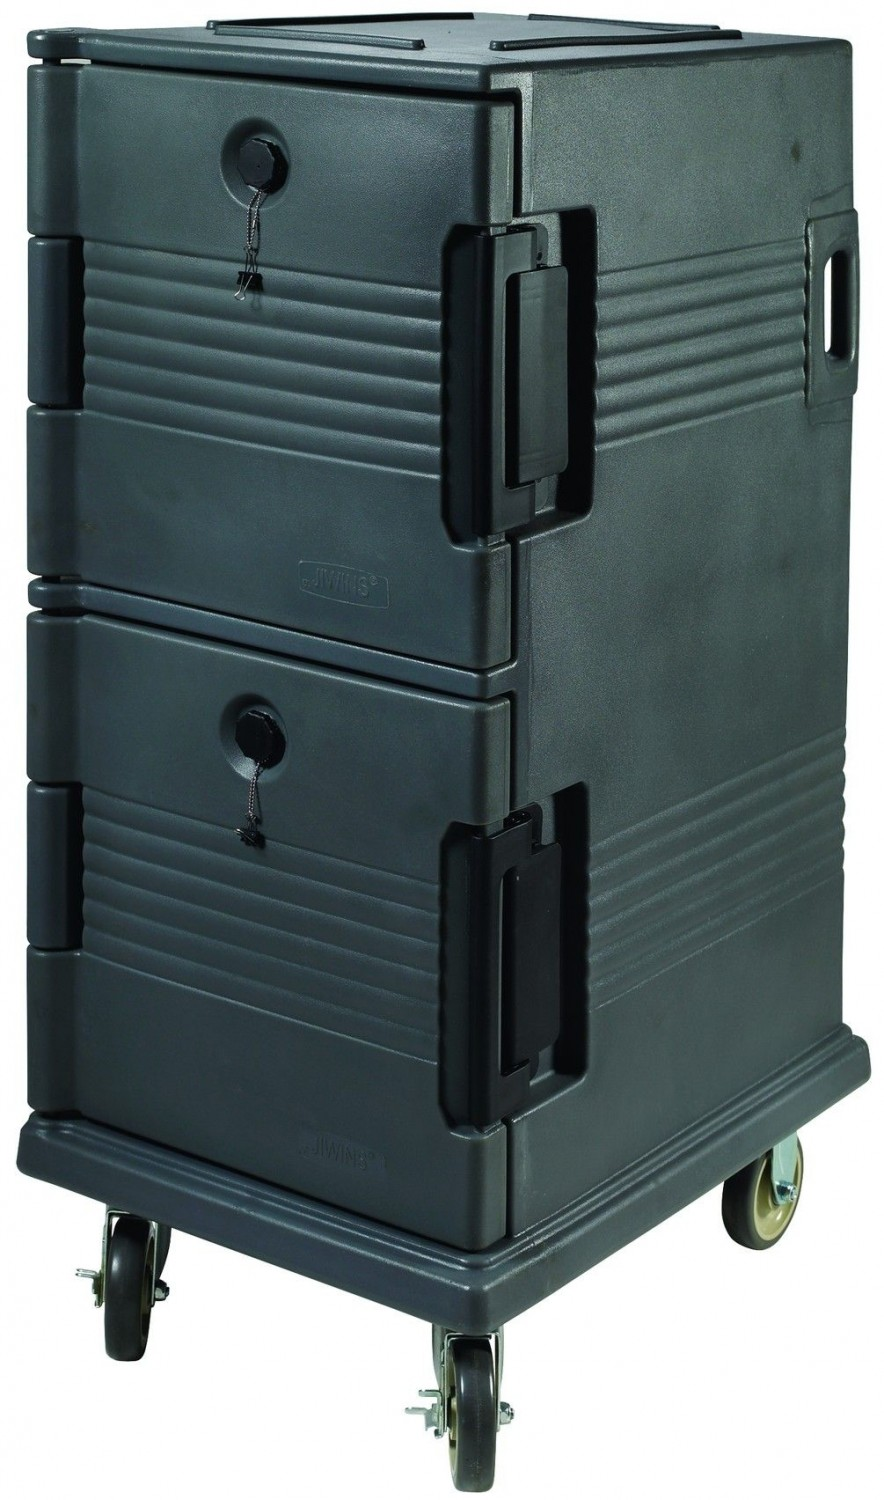 Winco IFT-2 Double Full Size Food Transporter